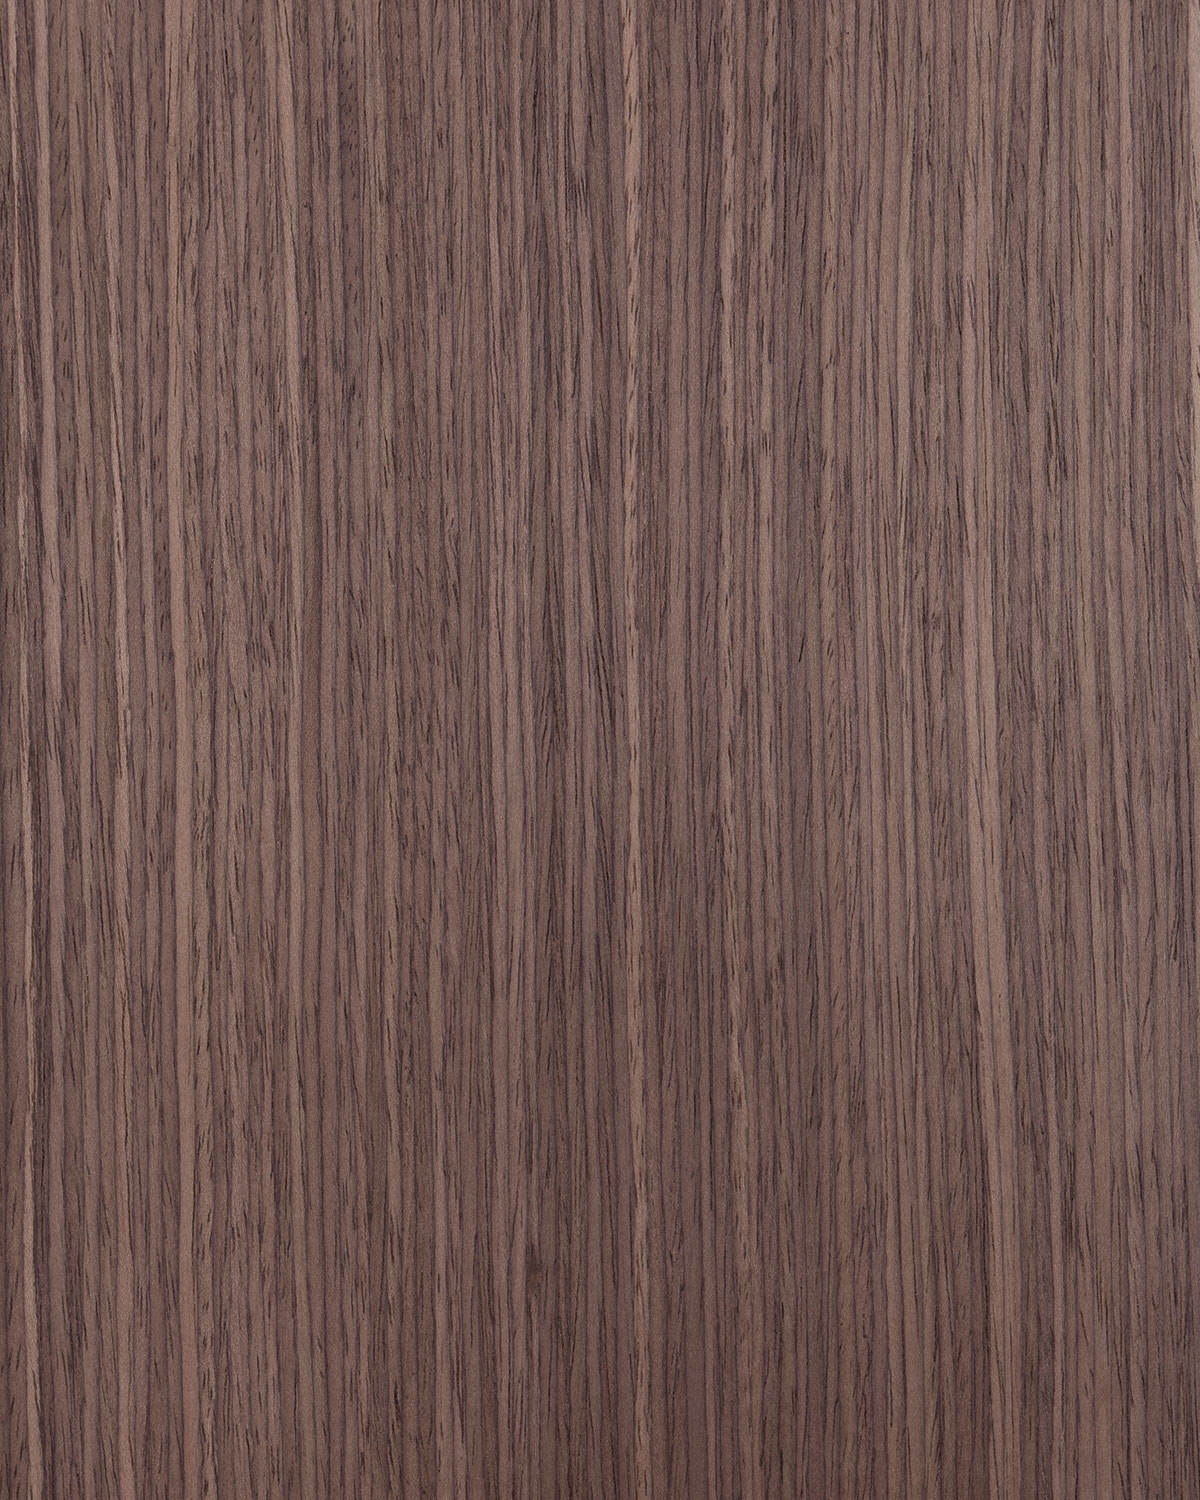 Recon Walnut Quarter Cut